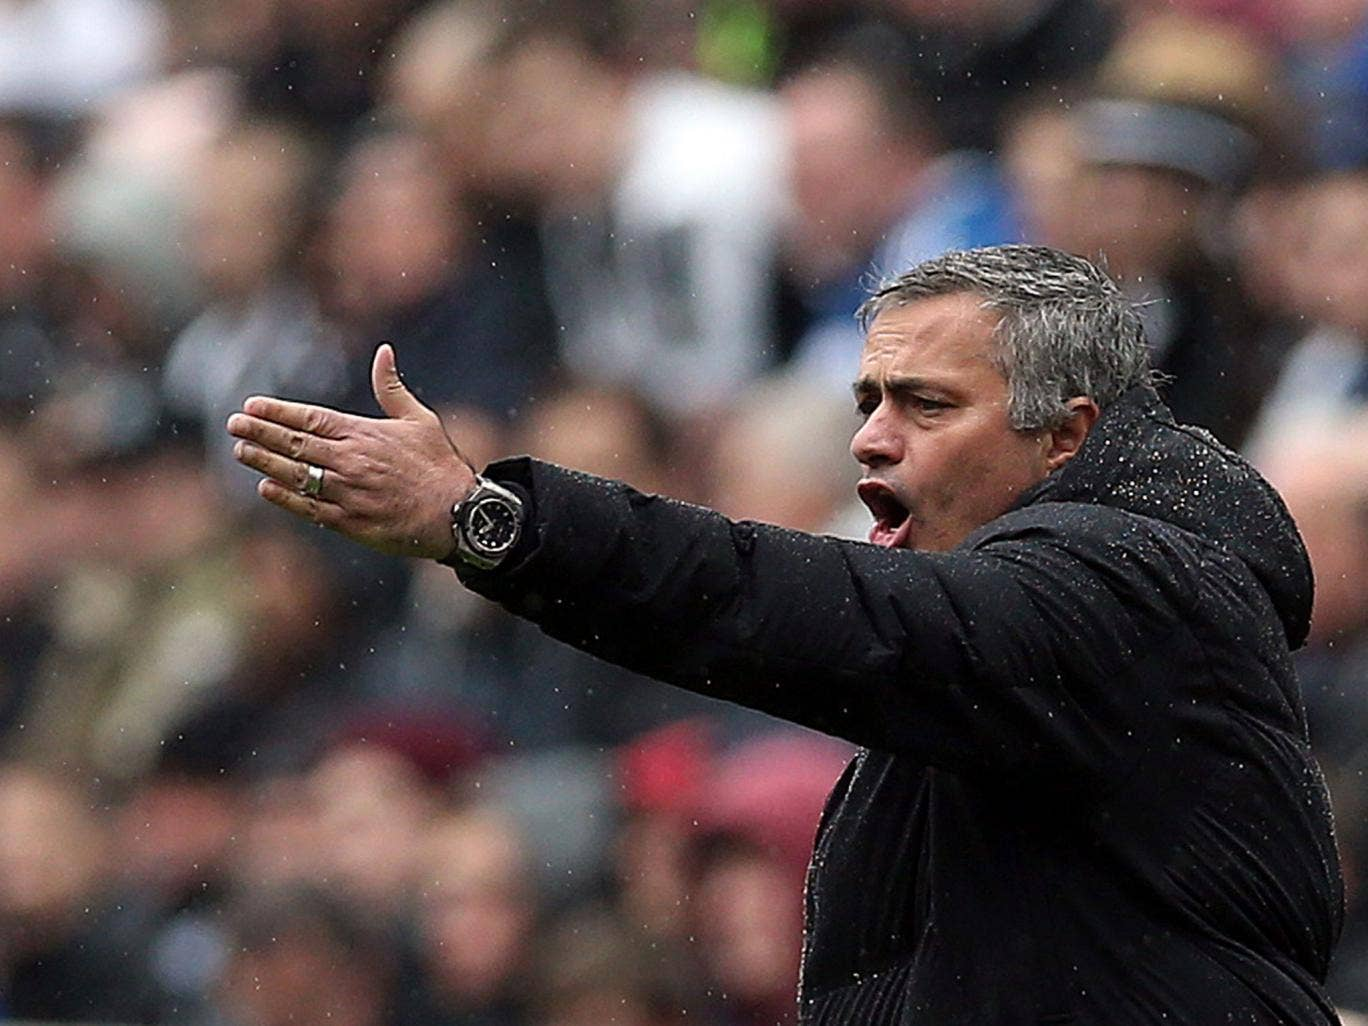 Jose Mourinho shows his displeasure with Chelsea's performance at a damp St James' Park